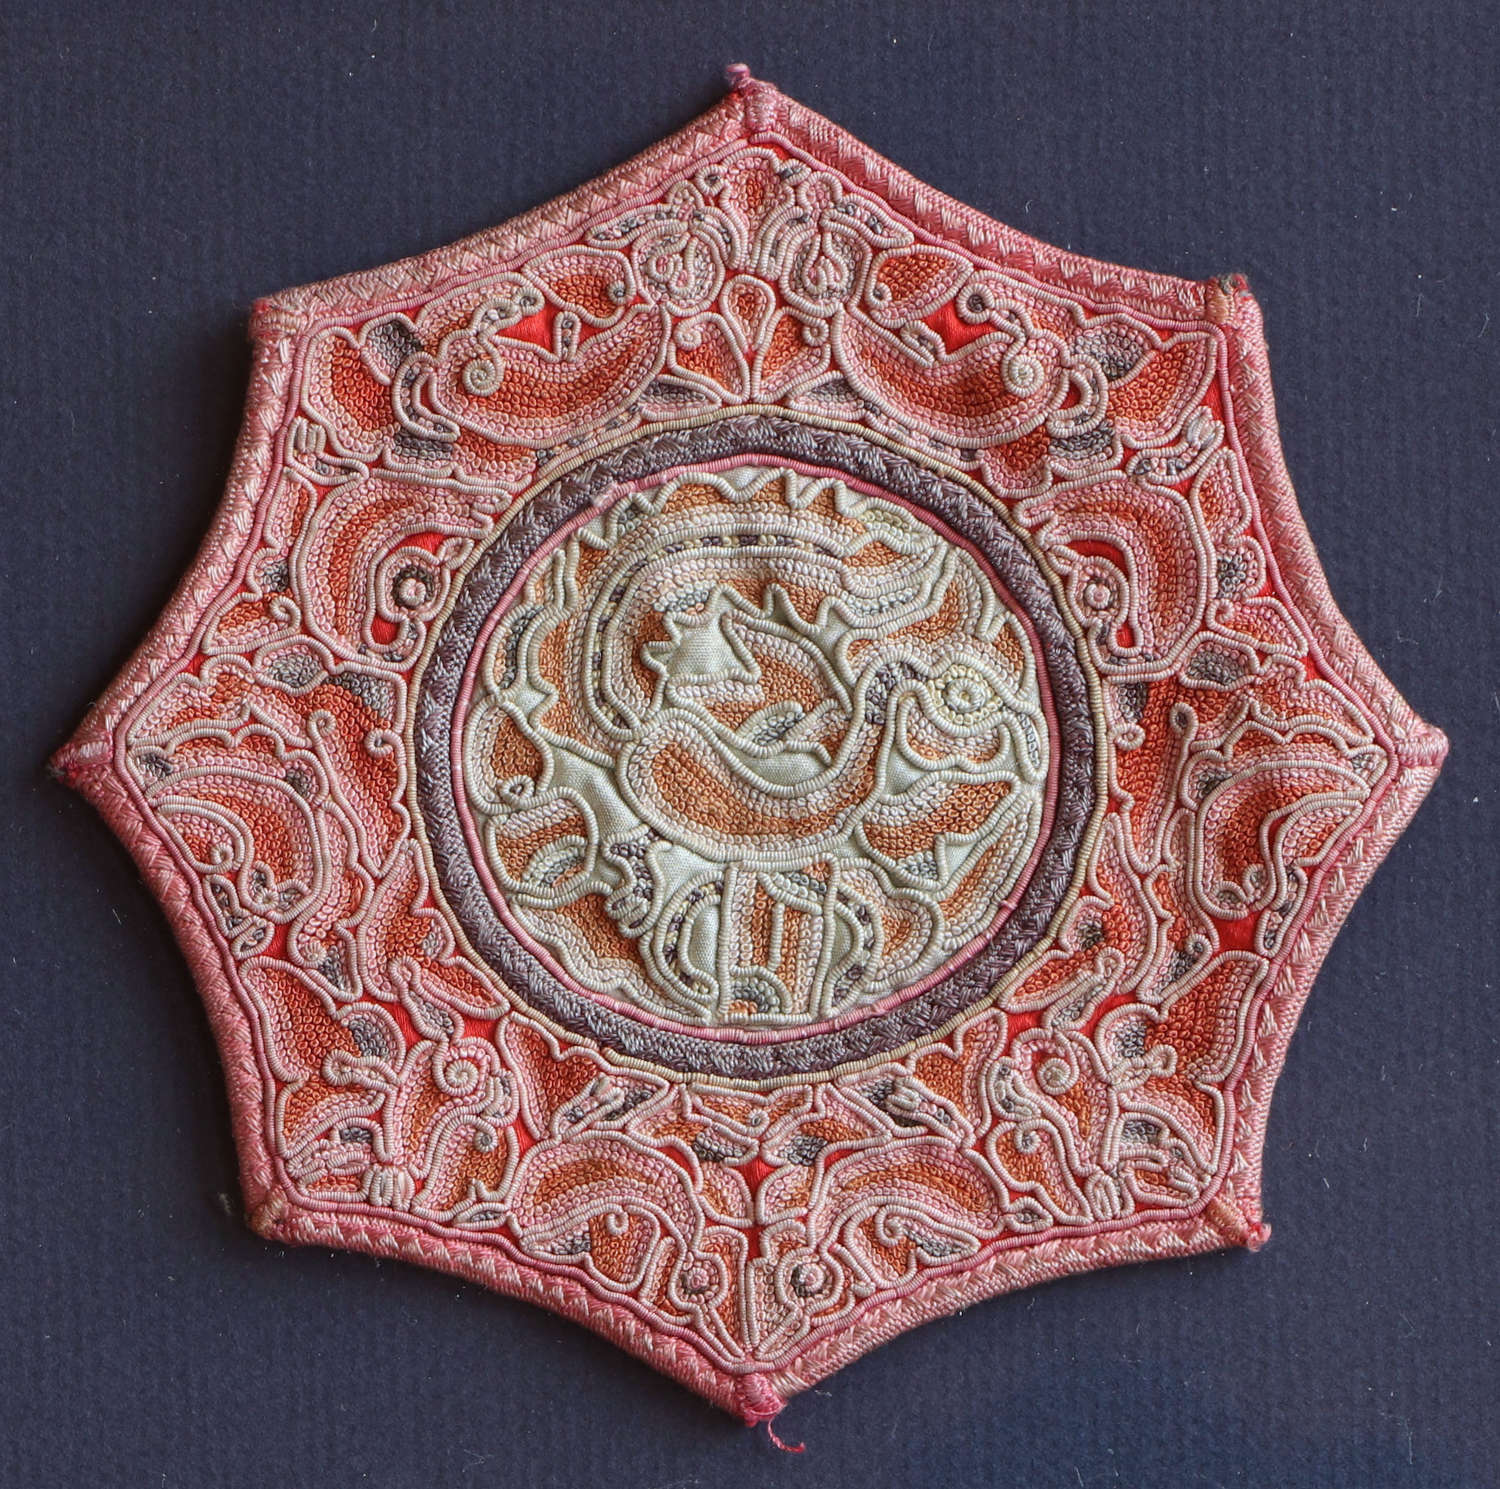 A small framed octagonal Chinese silk embroidery of a phoenix, C19th